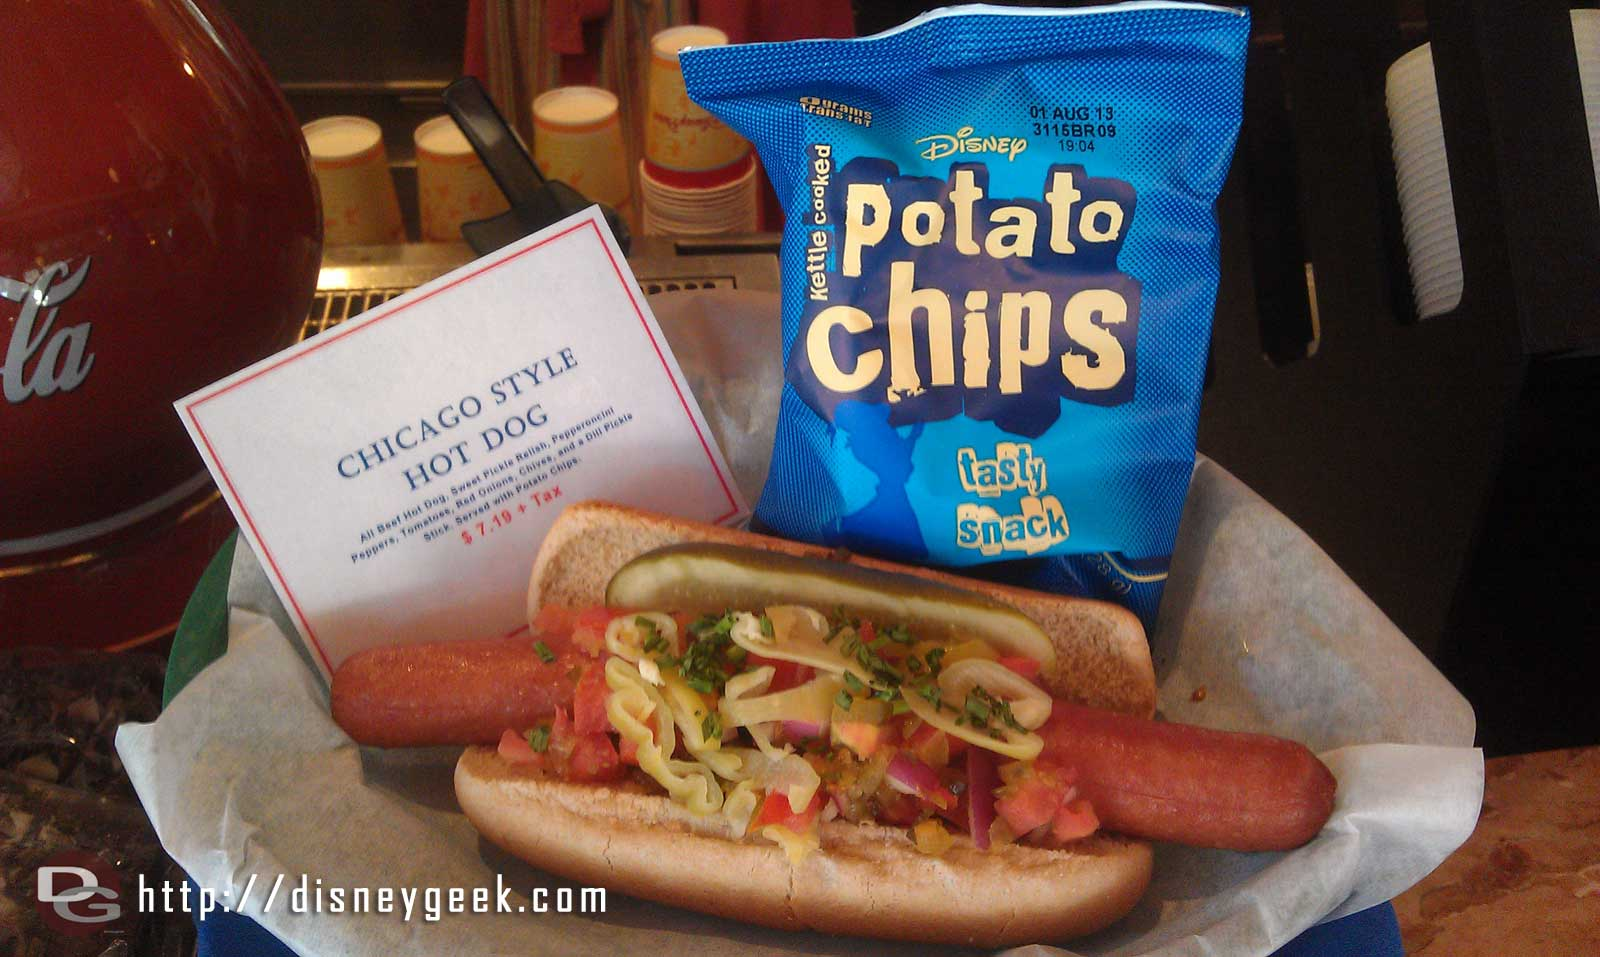 Chicago Style hot dogs now available at Refreshment Corner